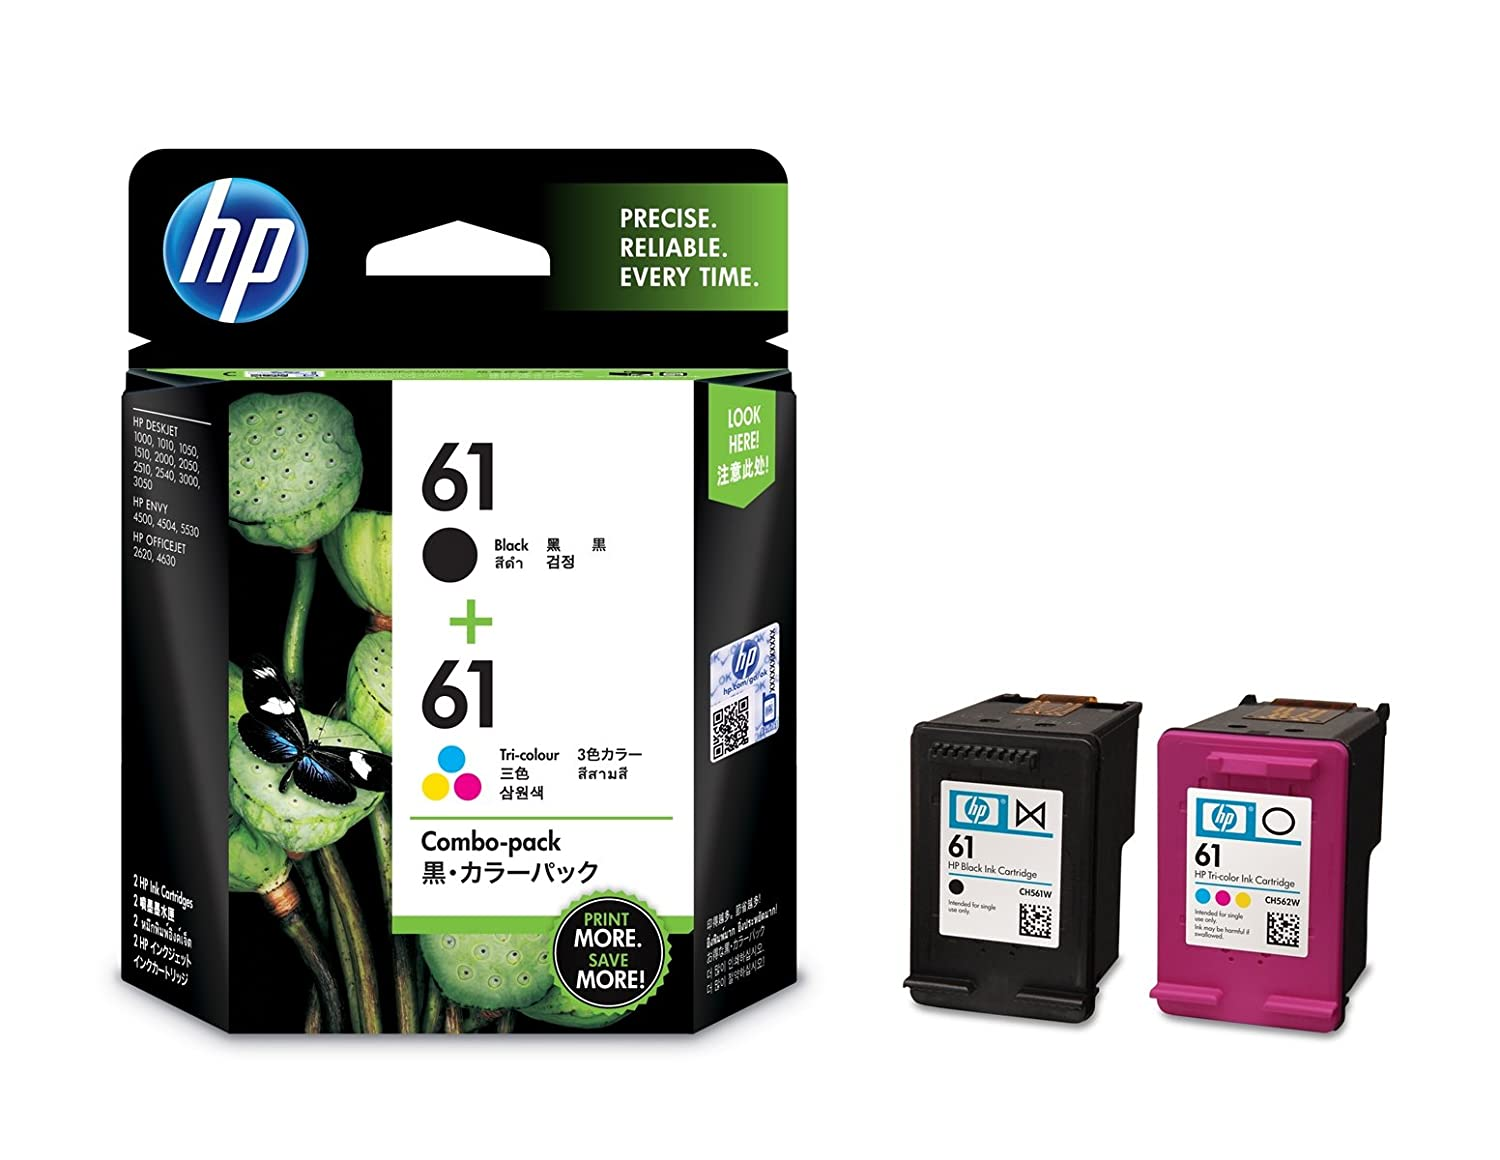 Quite simply, your HP printer needs printer supplies it can count on, such as Original HP inkjet cartridges, to perform as efficiently as possible. And you'll find the printer ink you're after at spanarpatri.ml Professional quality with dependable performance. Expect professional-quality documents when you use Original HP printer ink.